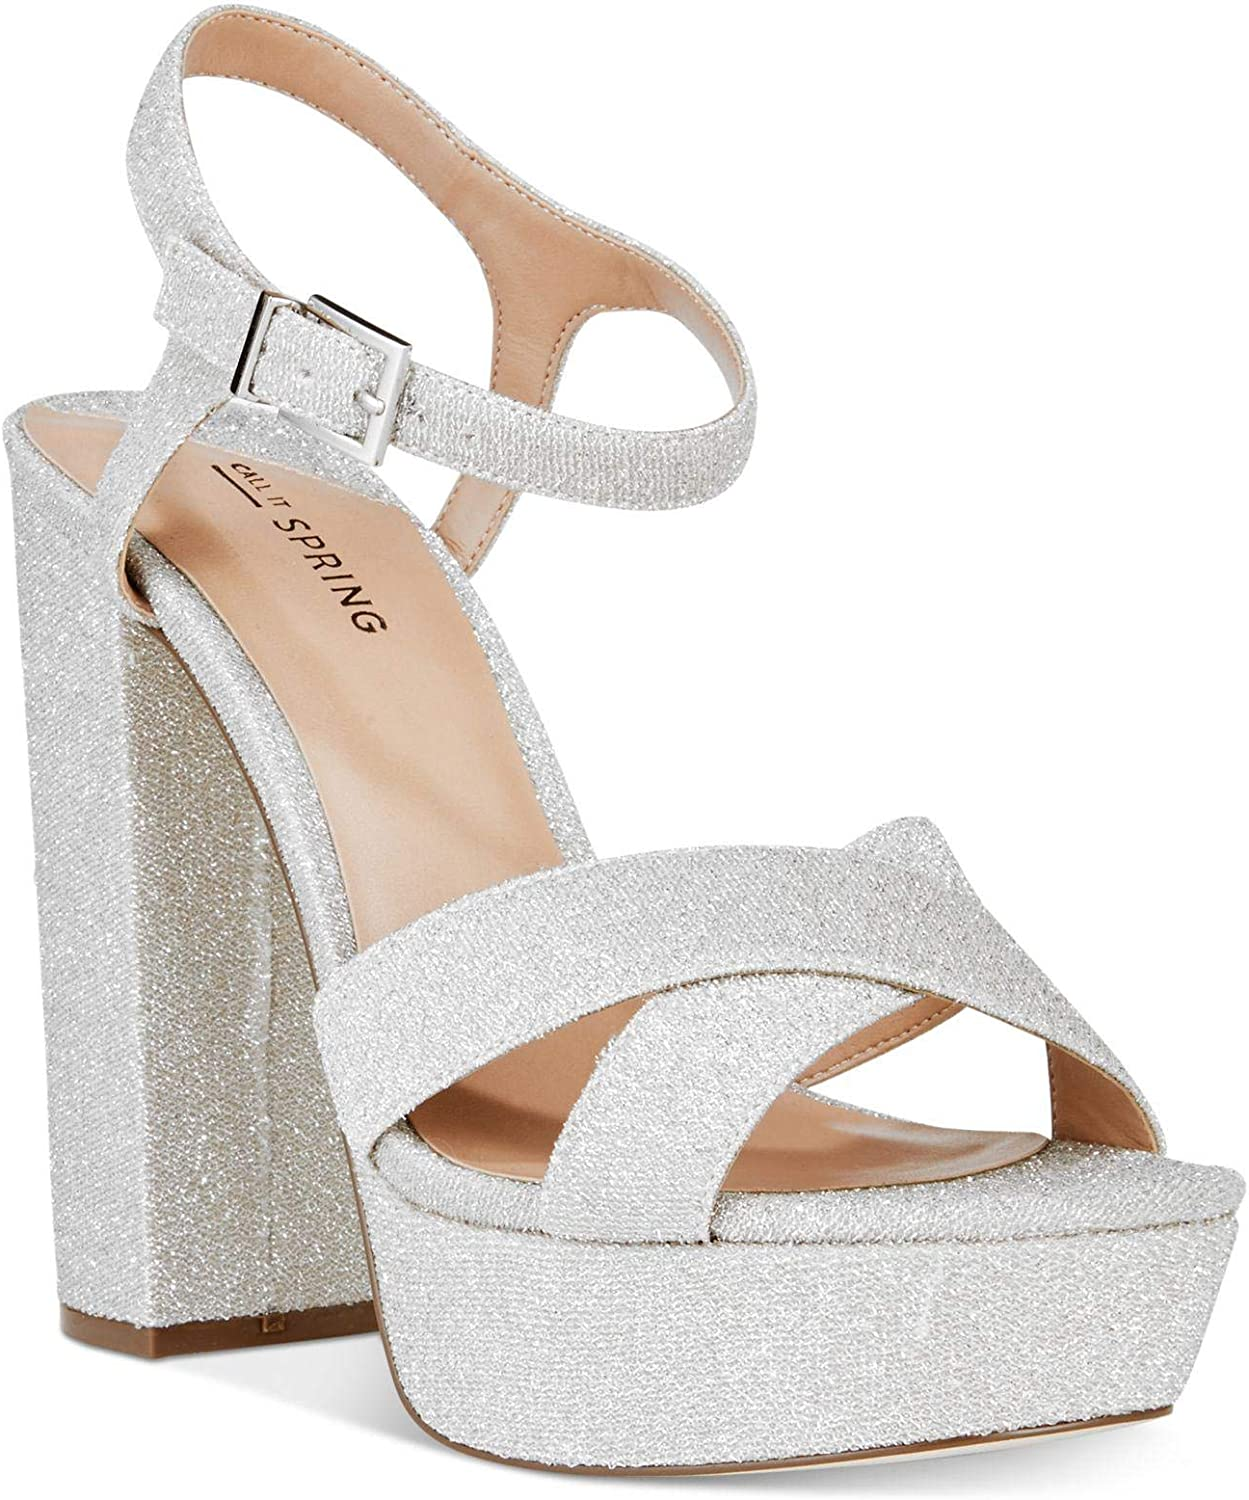 Call It Spring Womens Thorerien-81 Fabric Open Toe Casual Ankle Strap Sandals